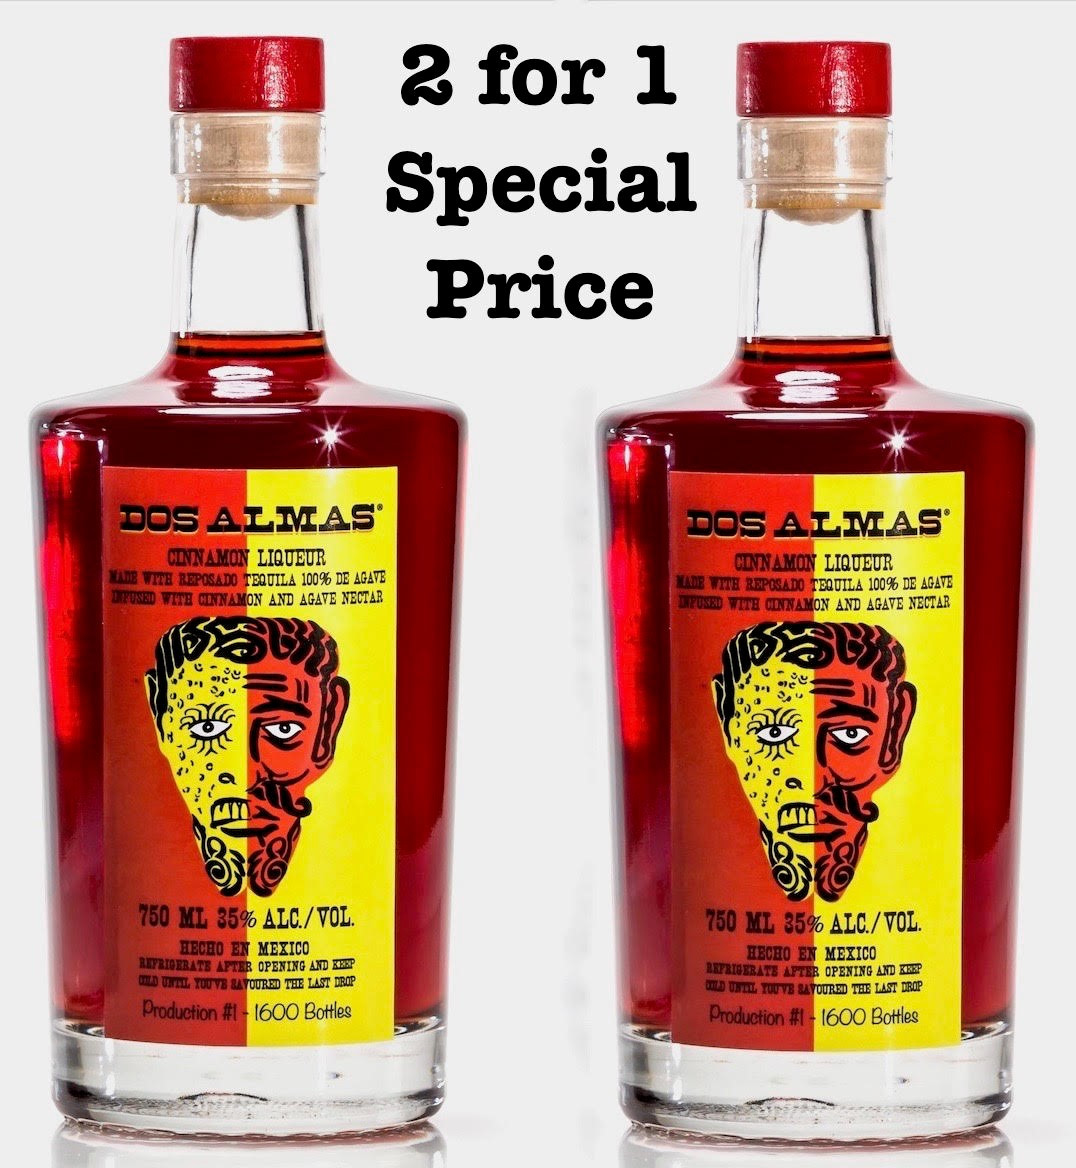 DOS ALMAS CINNAMON LIQUEUR Two for price of one